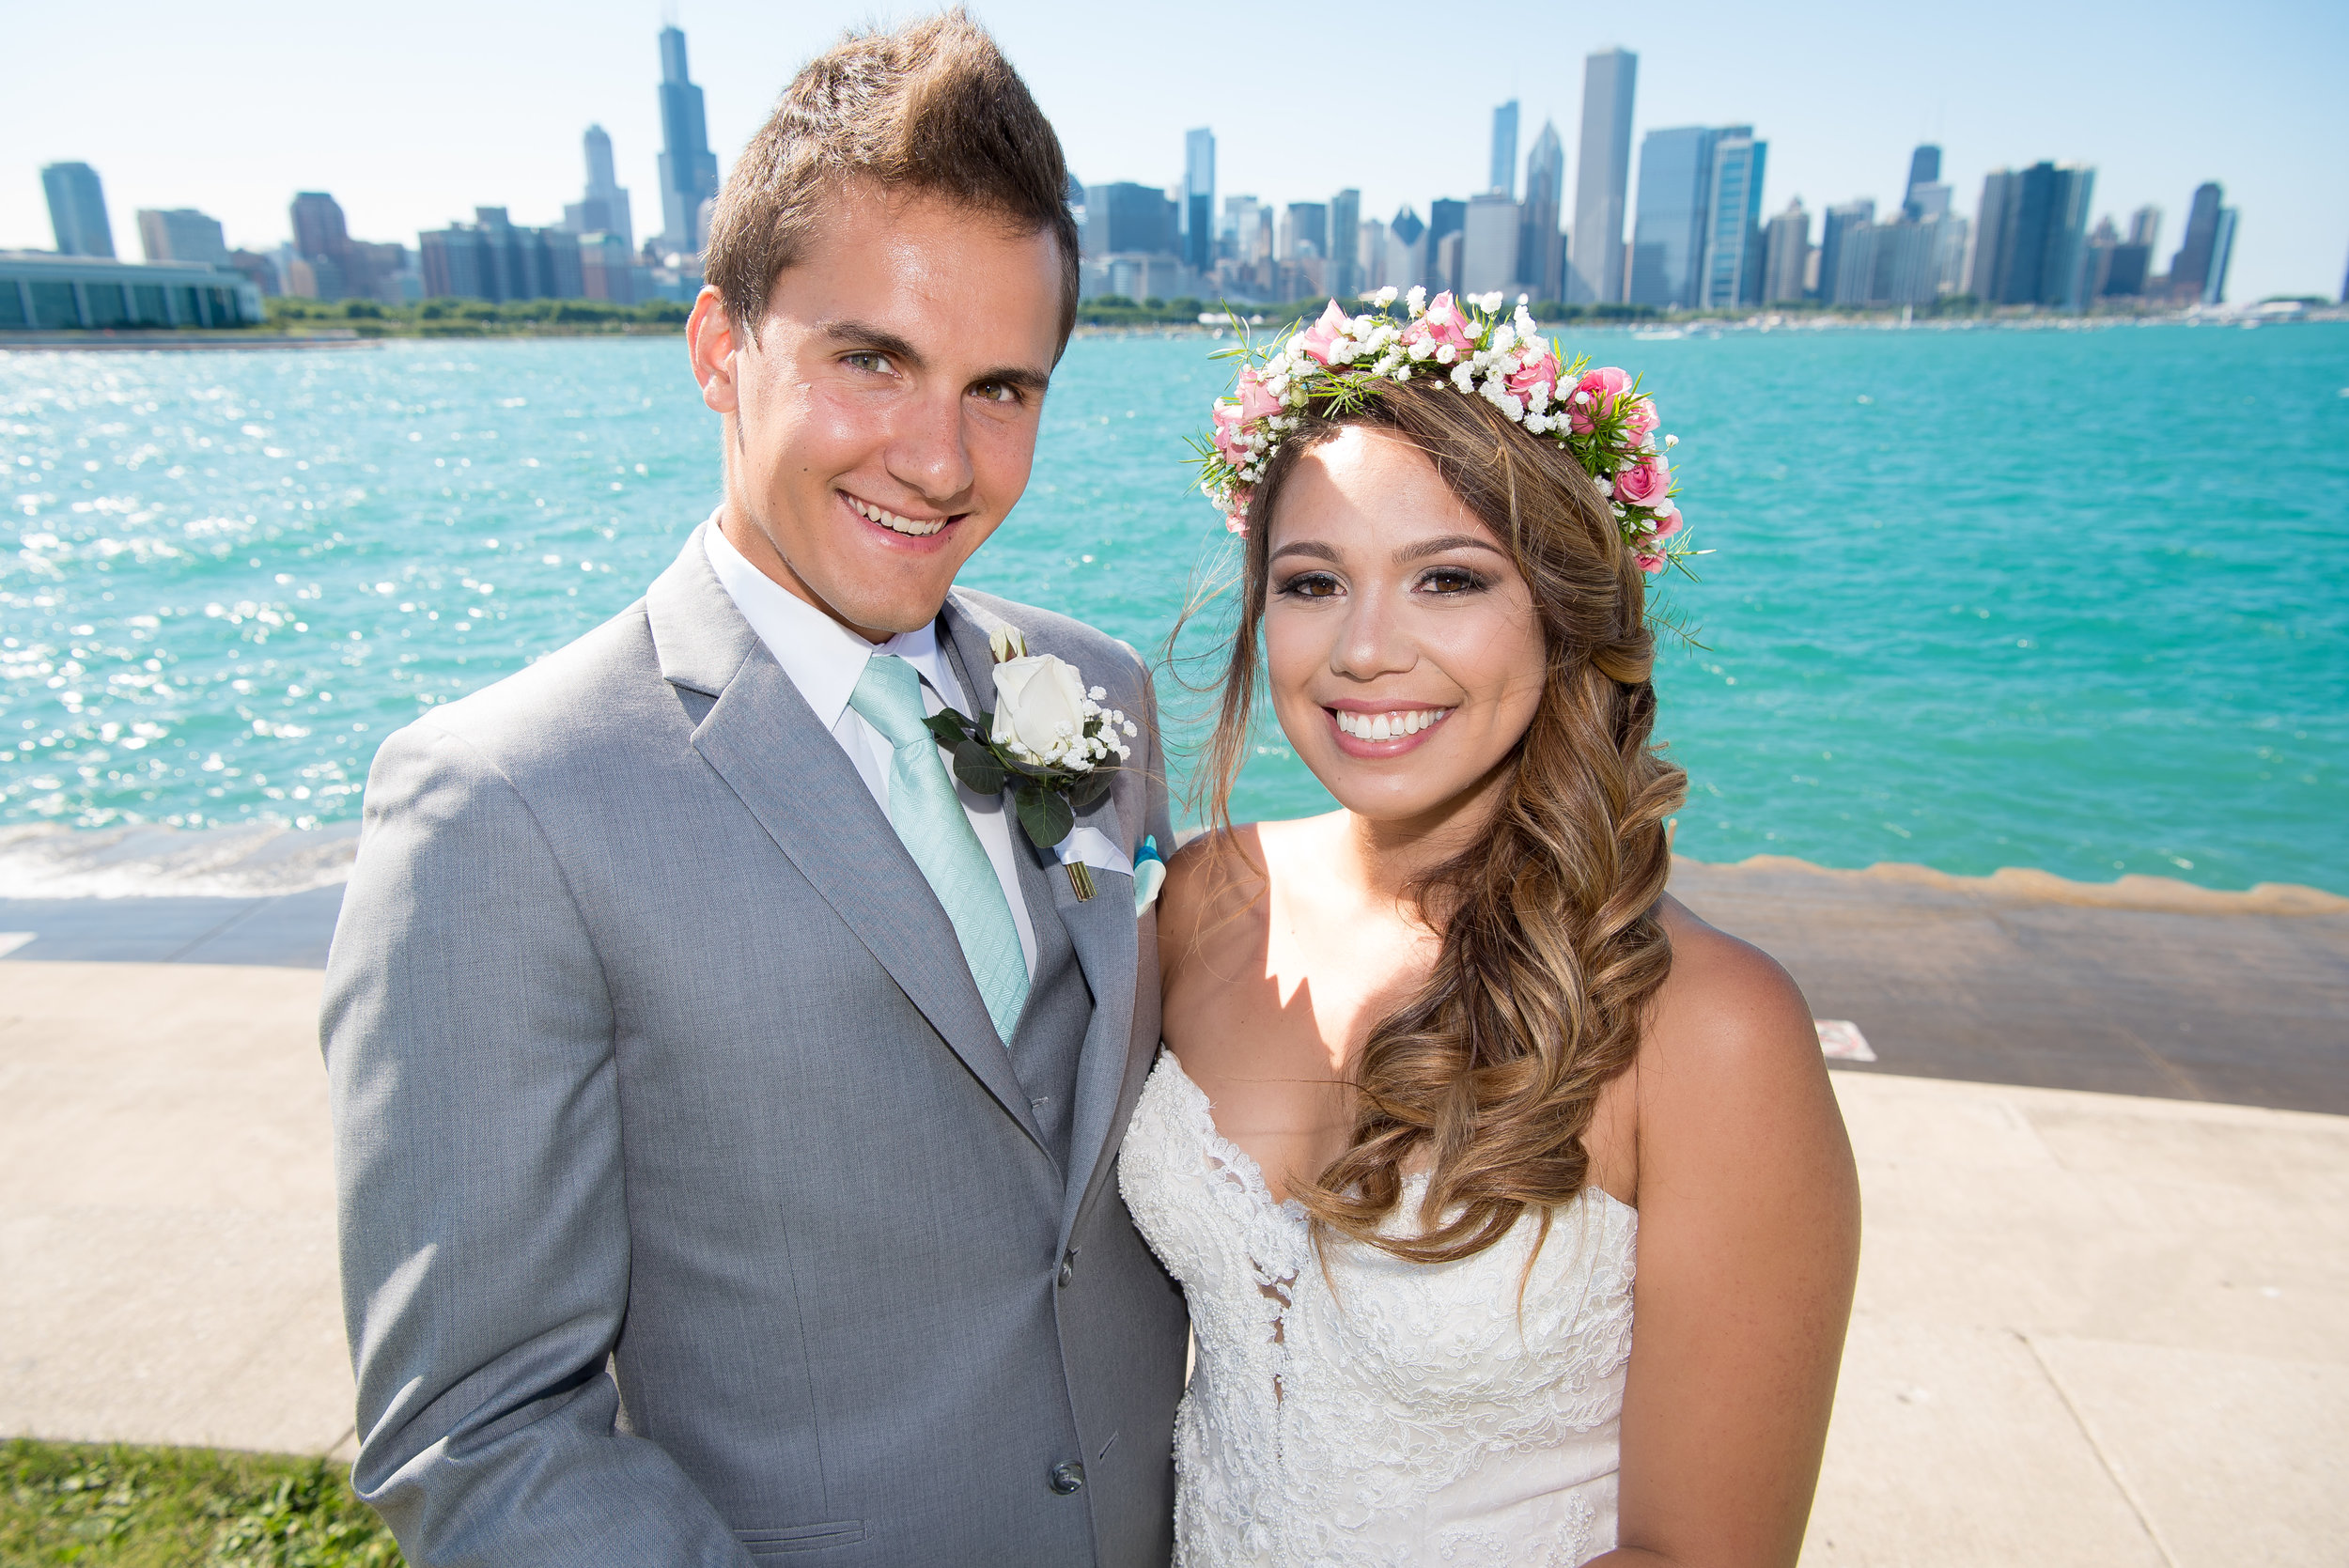 wedding_chicago_love_lakefront